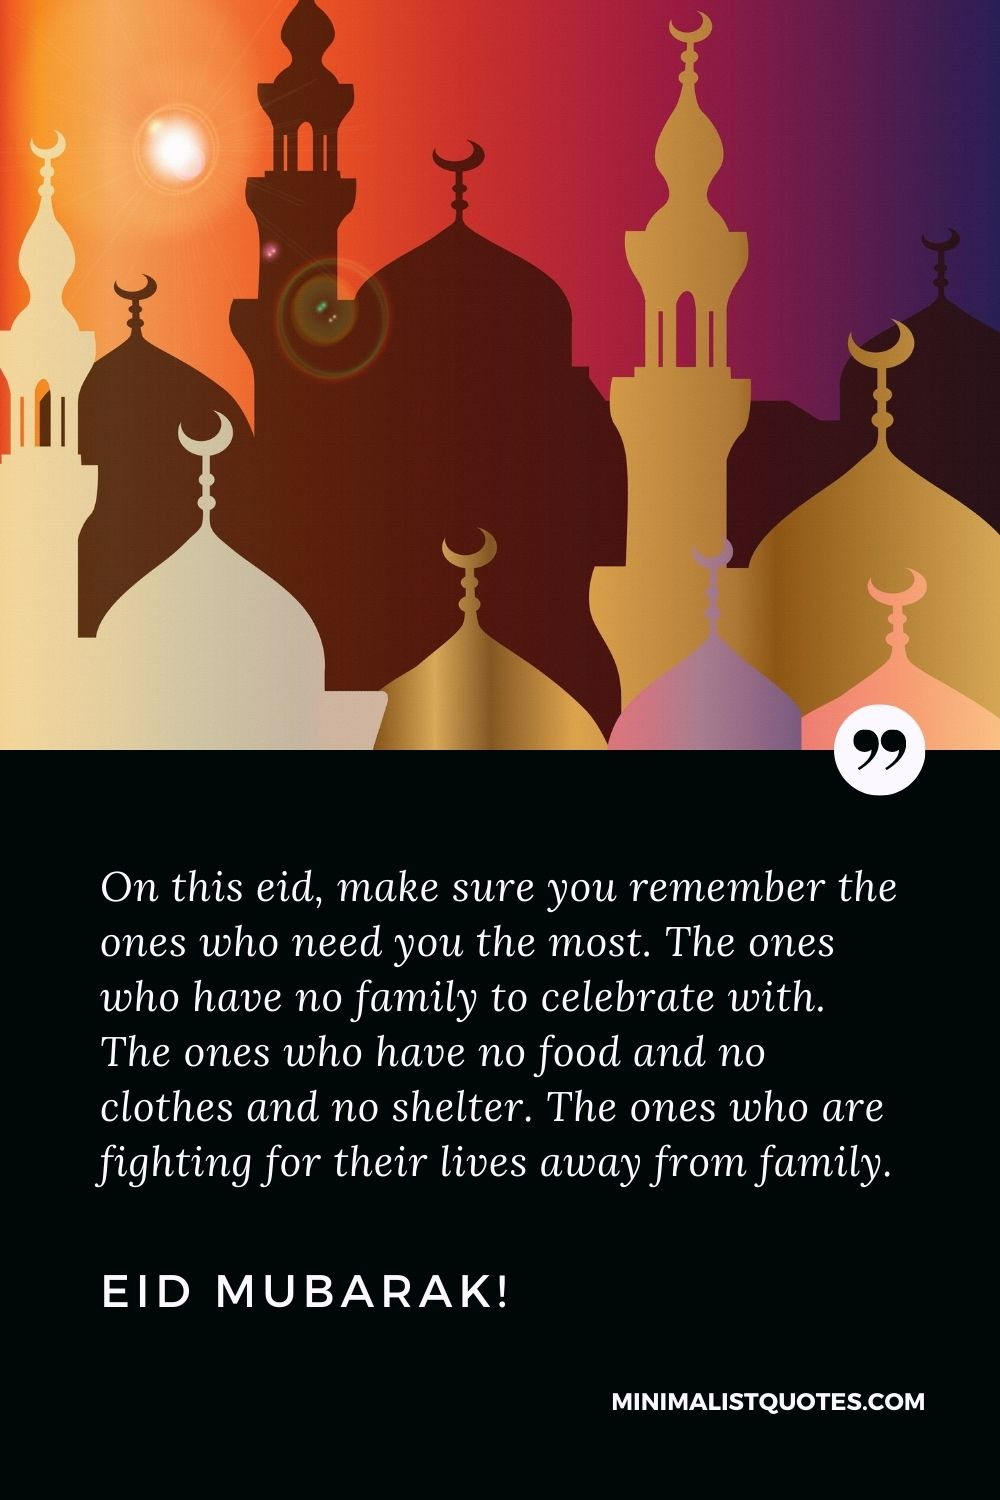 Eid Quote, Wish & Message With Image: On this eid, make sure you remember the ones who need you the most. The ones who have no family to celebrate with. The ones who have no food and no clothes and no shelter. The ones who are fighting for their lives away from family.Eid Mubarak!